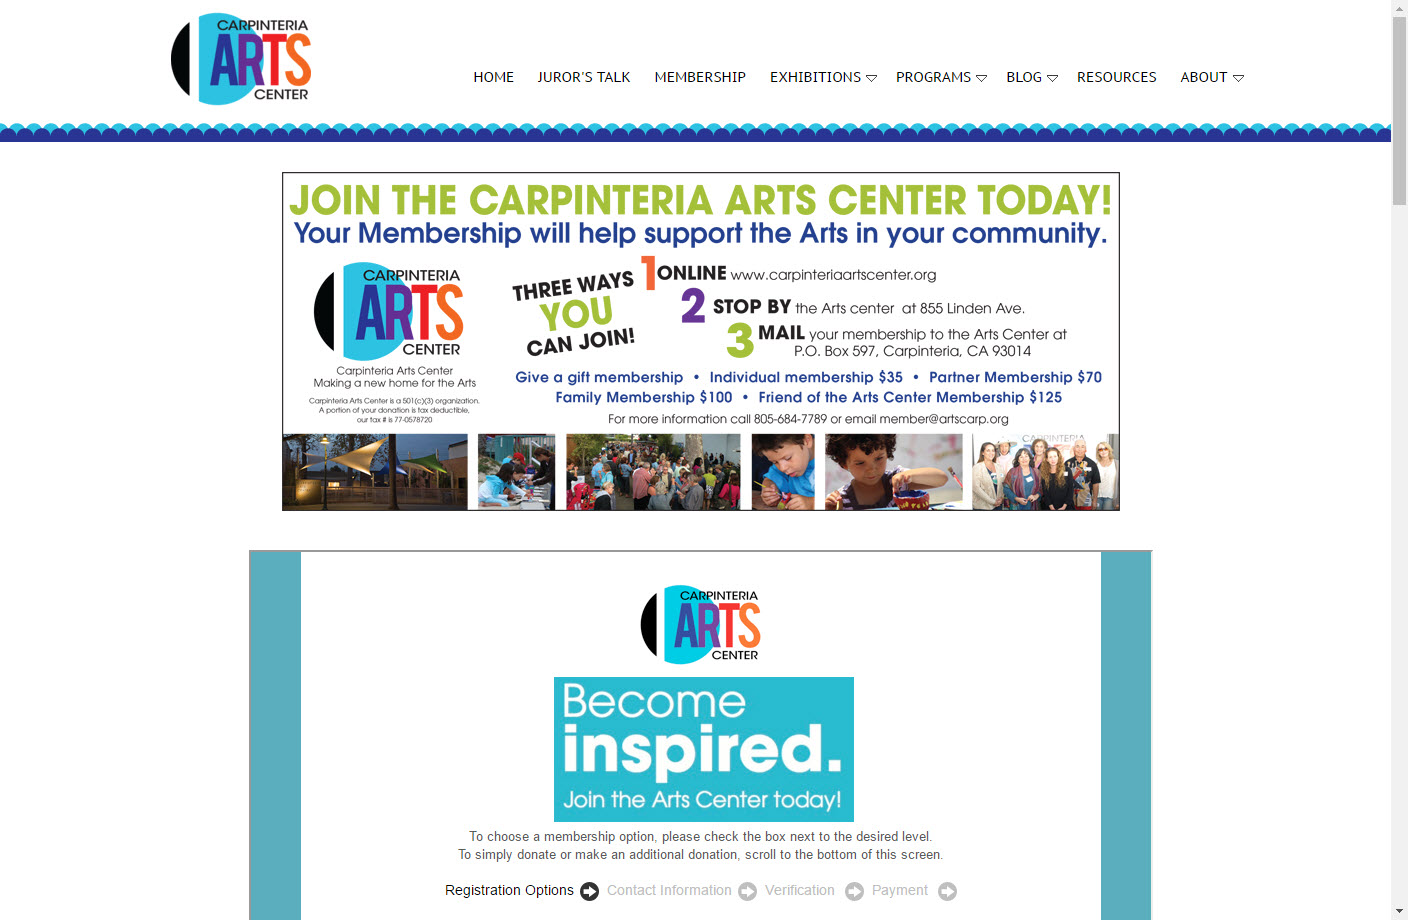 Join the Arts Center - Capinteria Arts center